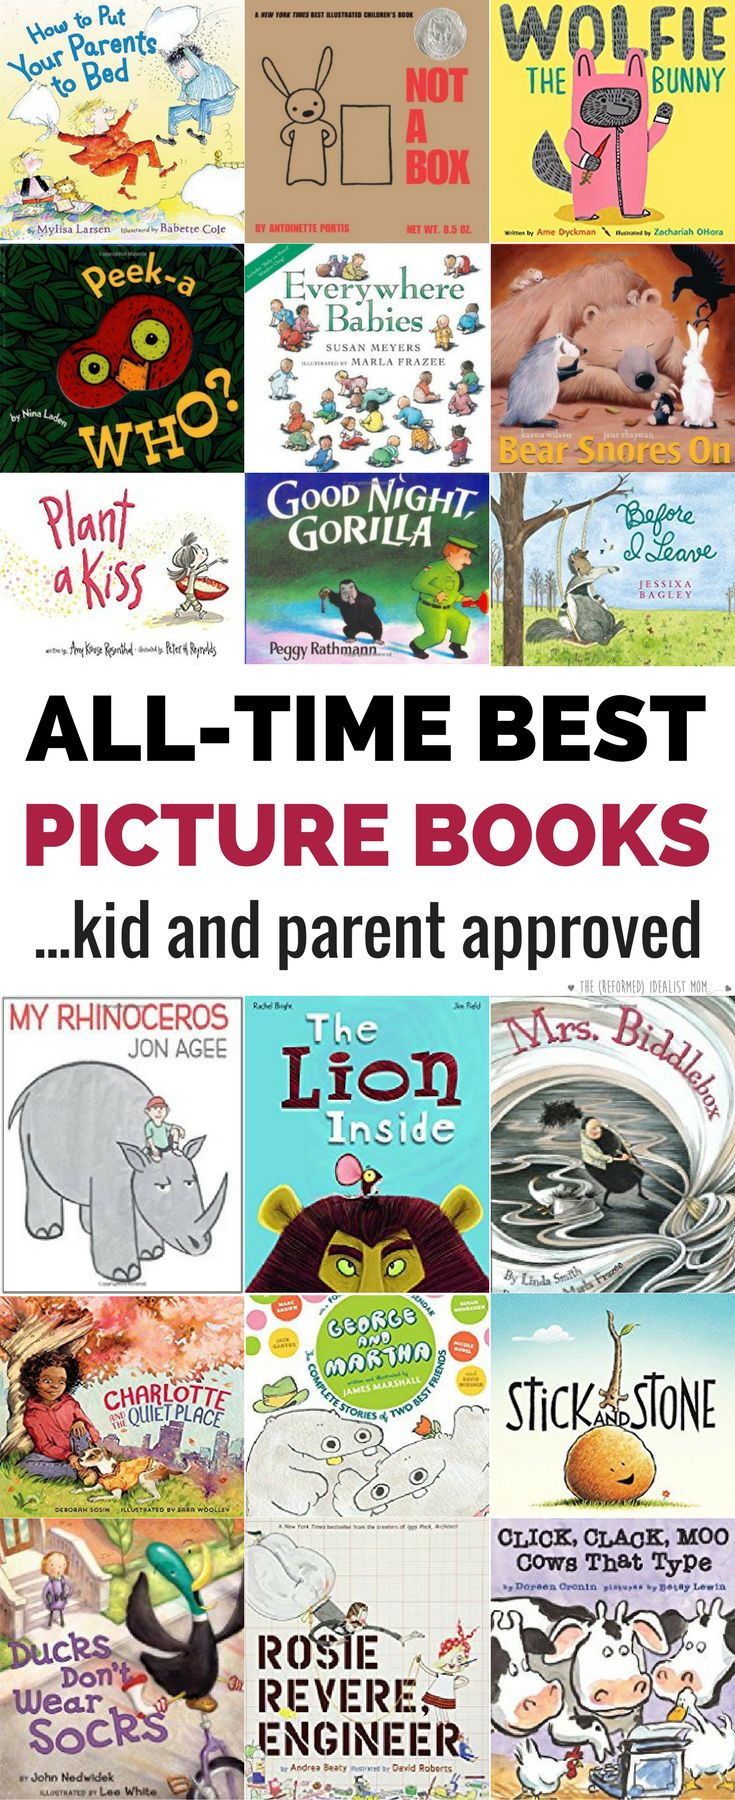 "This isn't a list of the best picture books according to the ""experts."" Every children's book in this list is 100% kid and parent approved because that's who ends up reading them 72 billion times a day! These picture books for older kids and babies and everything in between will become your new favorites."